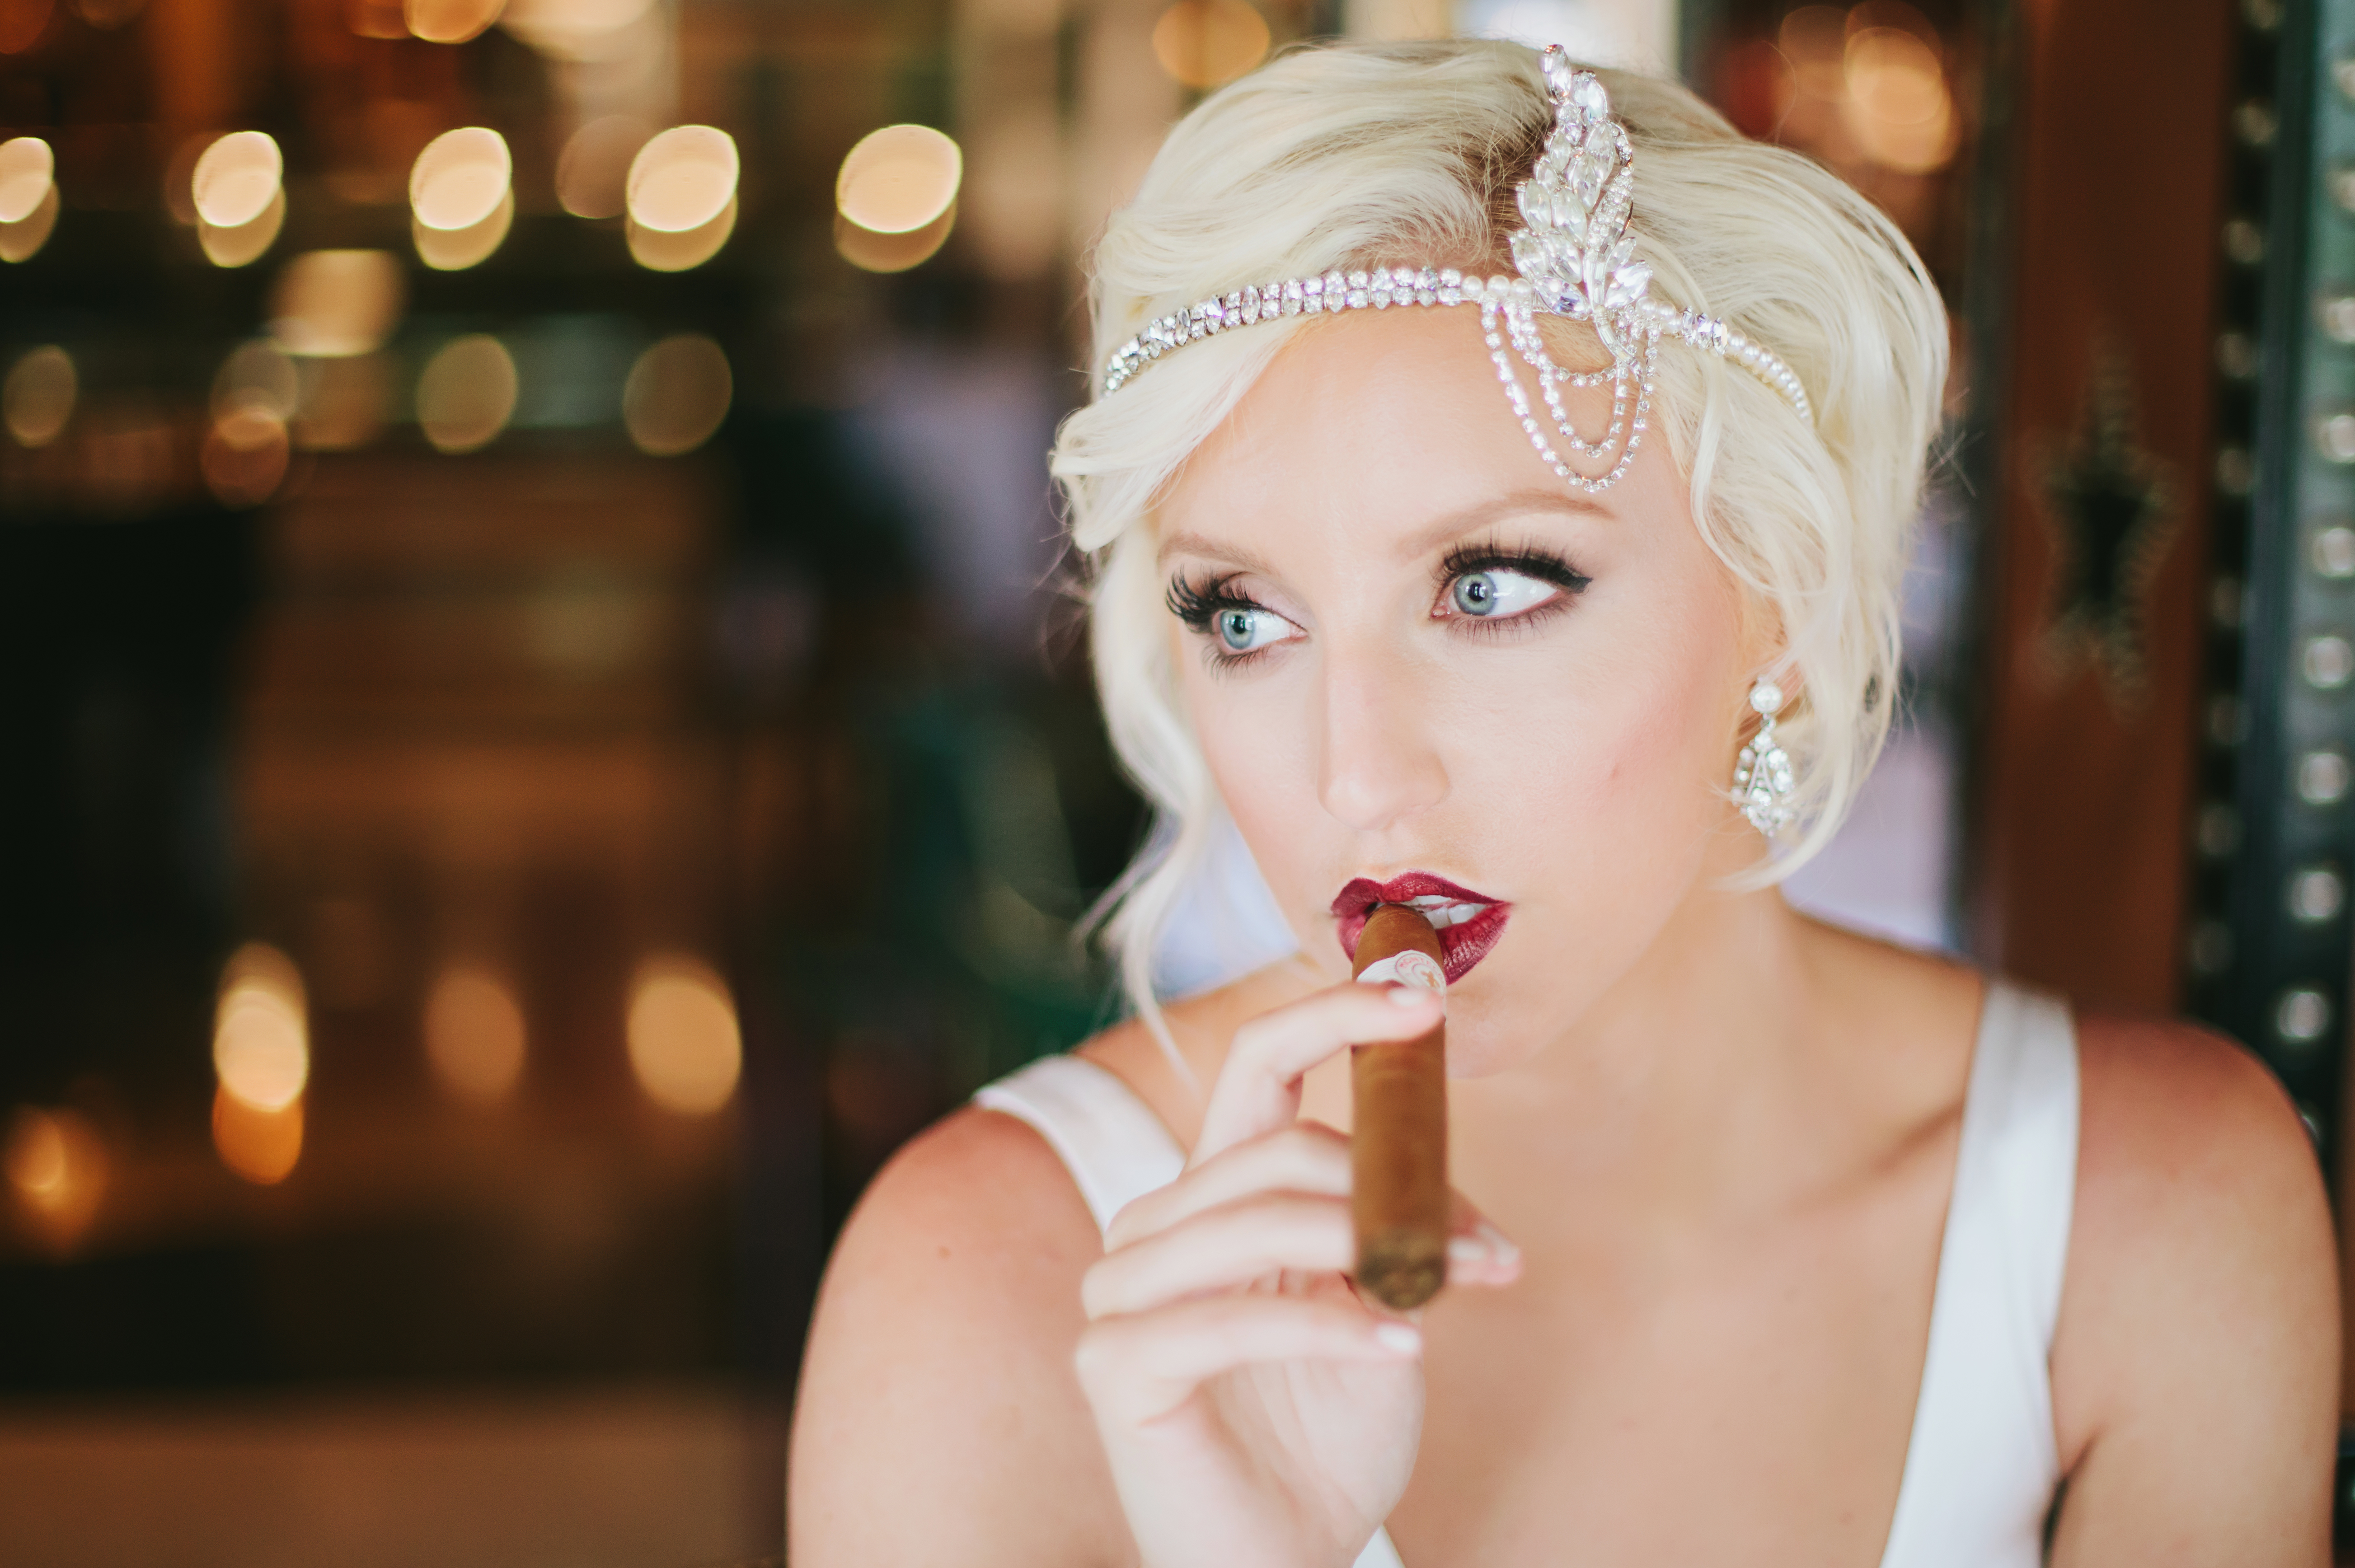 dallas bridal session archives - grit + gold event design | dallas